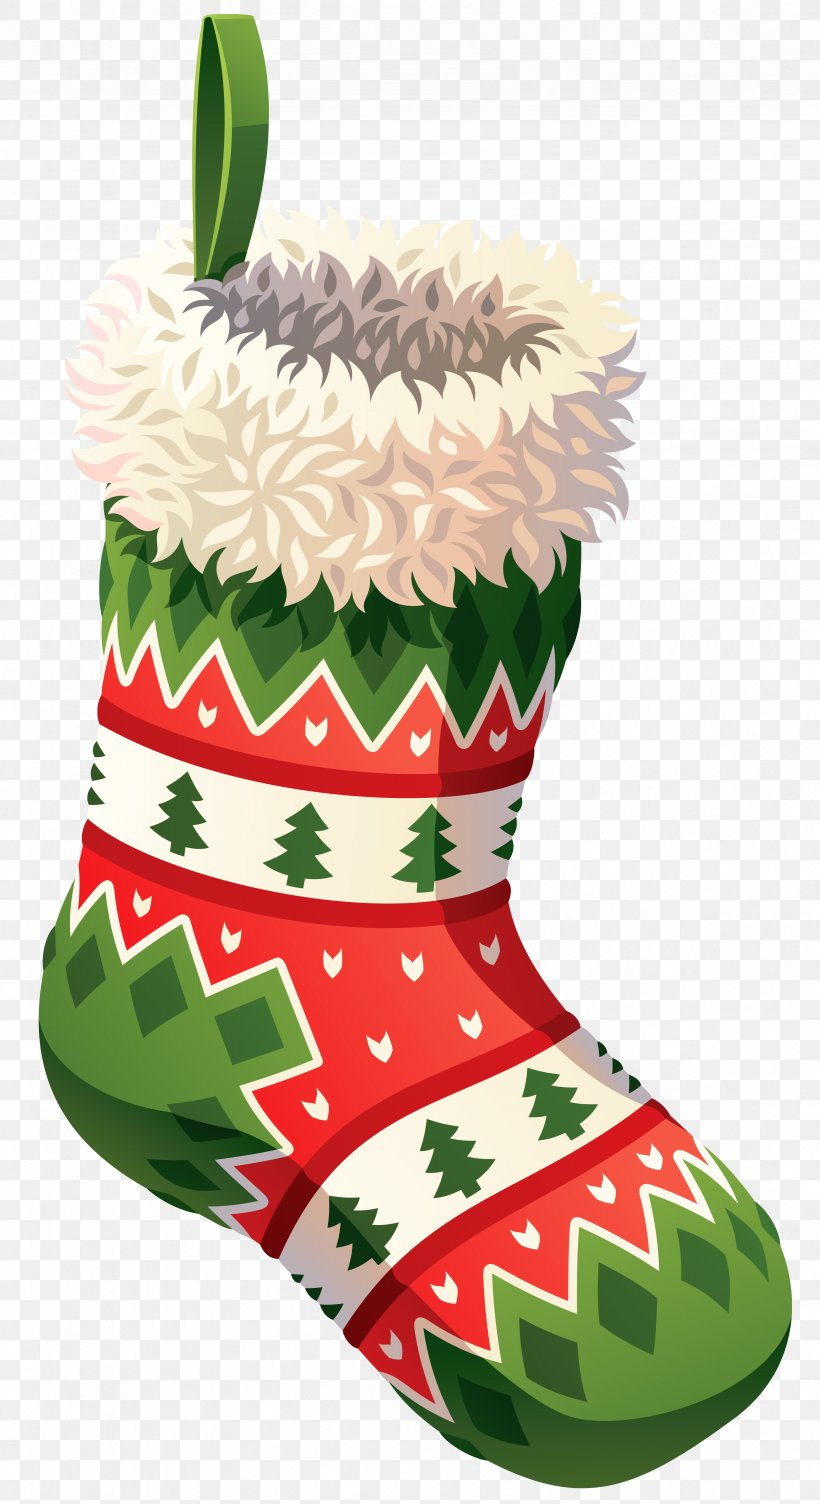 Christmas Stockings Png.Christmas Stocking Clip Art Png 3389x6218px Santa Claus